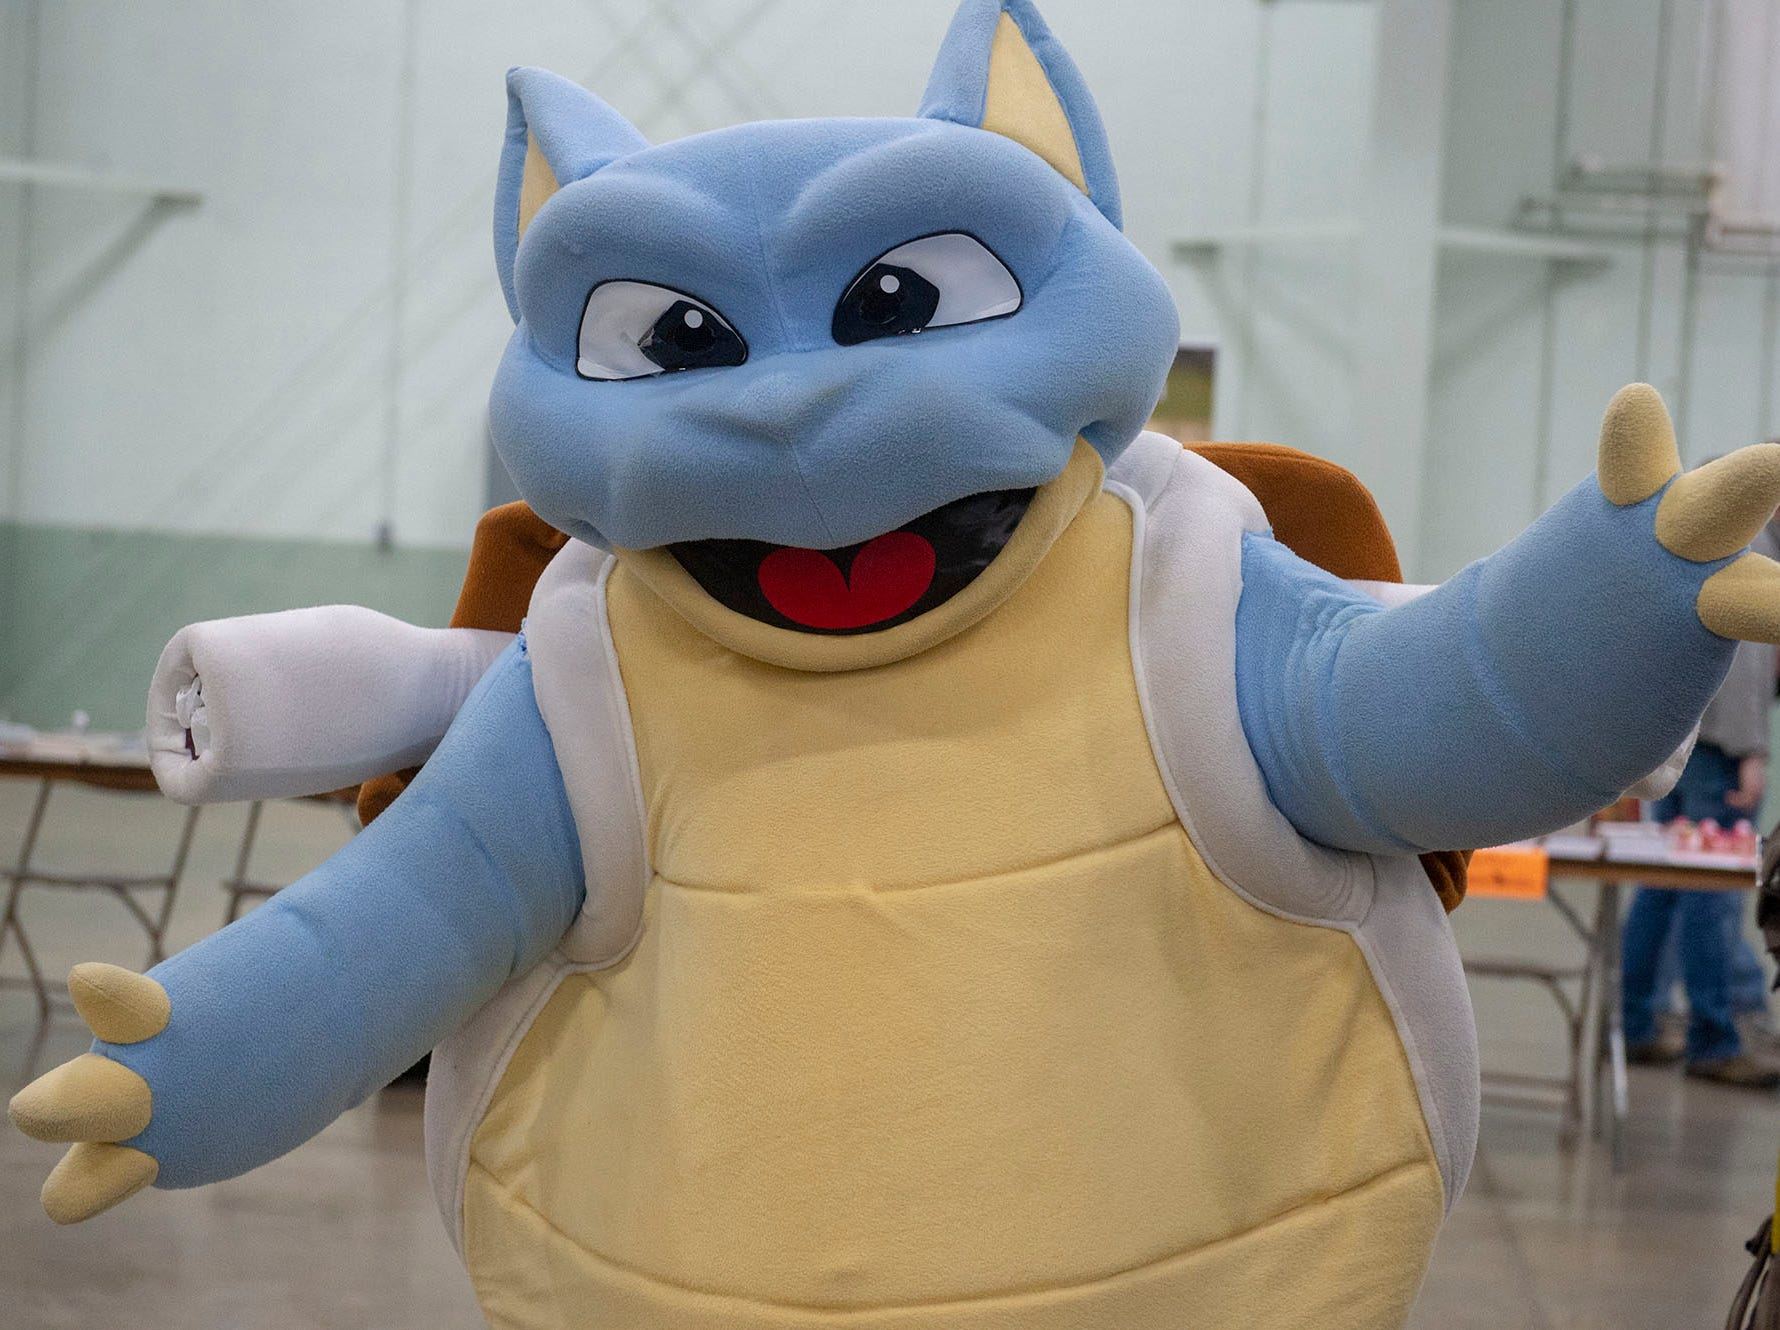 You can't tell from the outside, but inside this Blastoise costume from Pokemon is Braden Bolyard from York. He was attending the White Rose Comic Con, which runs through Sunday, March 24, 2019 at Utz Arena of the York Fairgrounds.